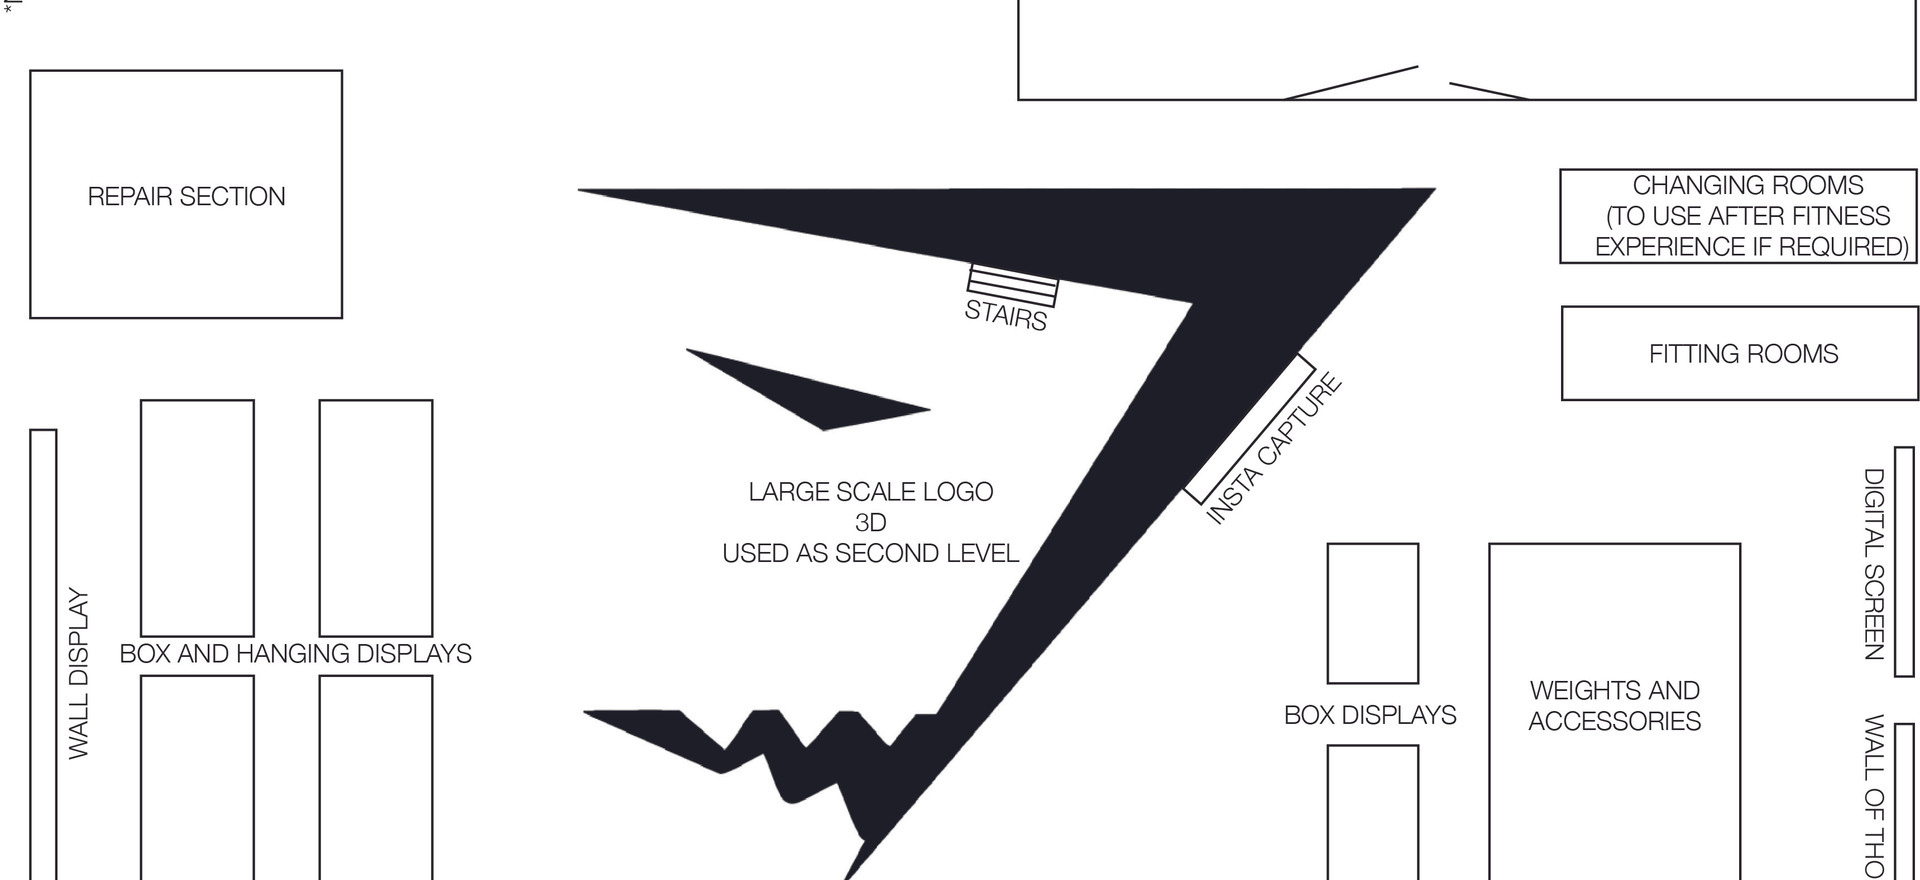 Planogram for in-store. Consisting of a repair section and fitness experience. The centre situates the Gymshark logo, creating a second level which overlooks the entire store.